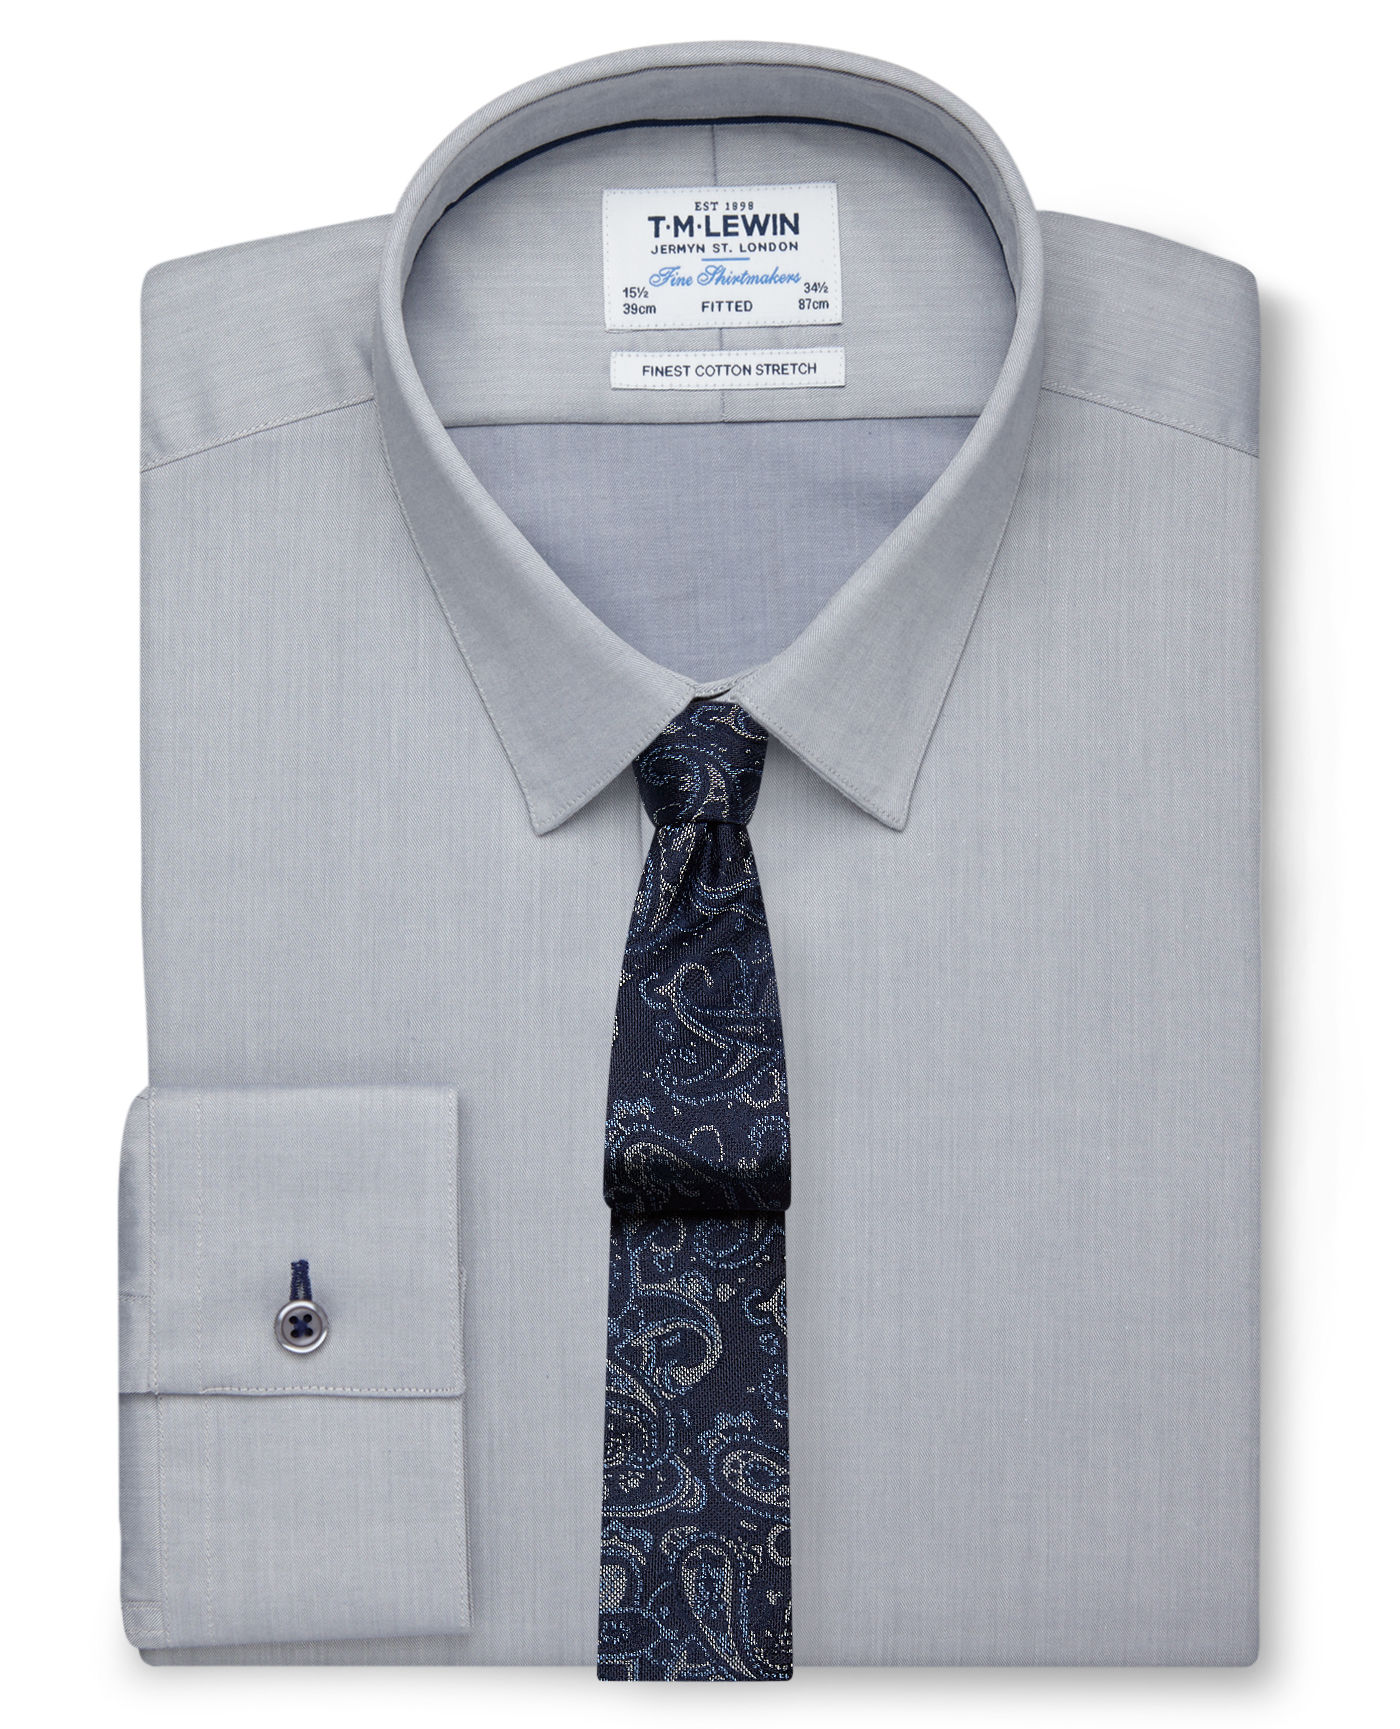 T.M.Lewin Stretch Cotton Fitted Grey Shirt - Button Cuff